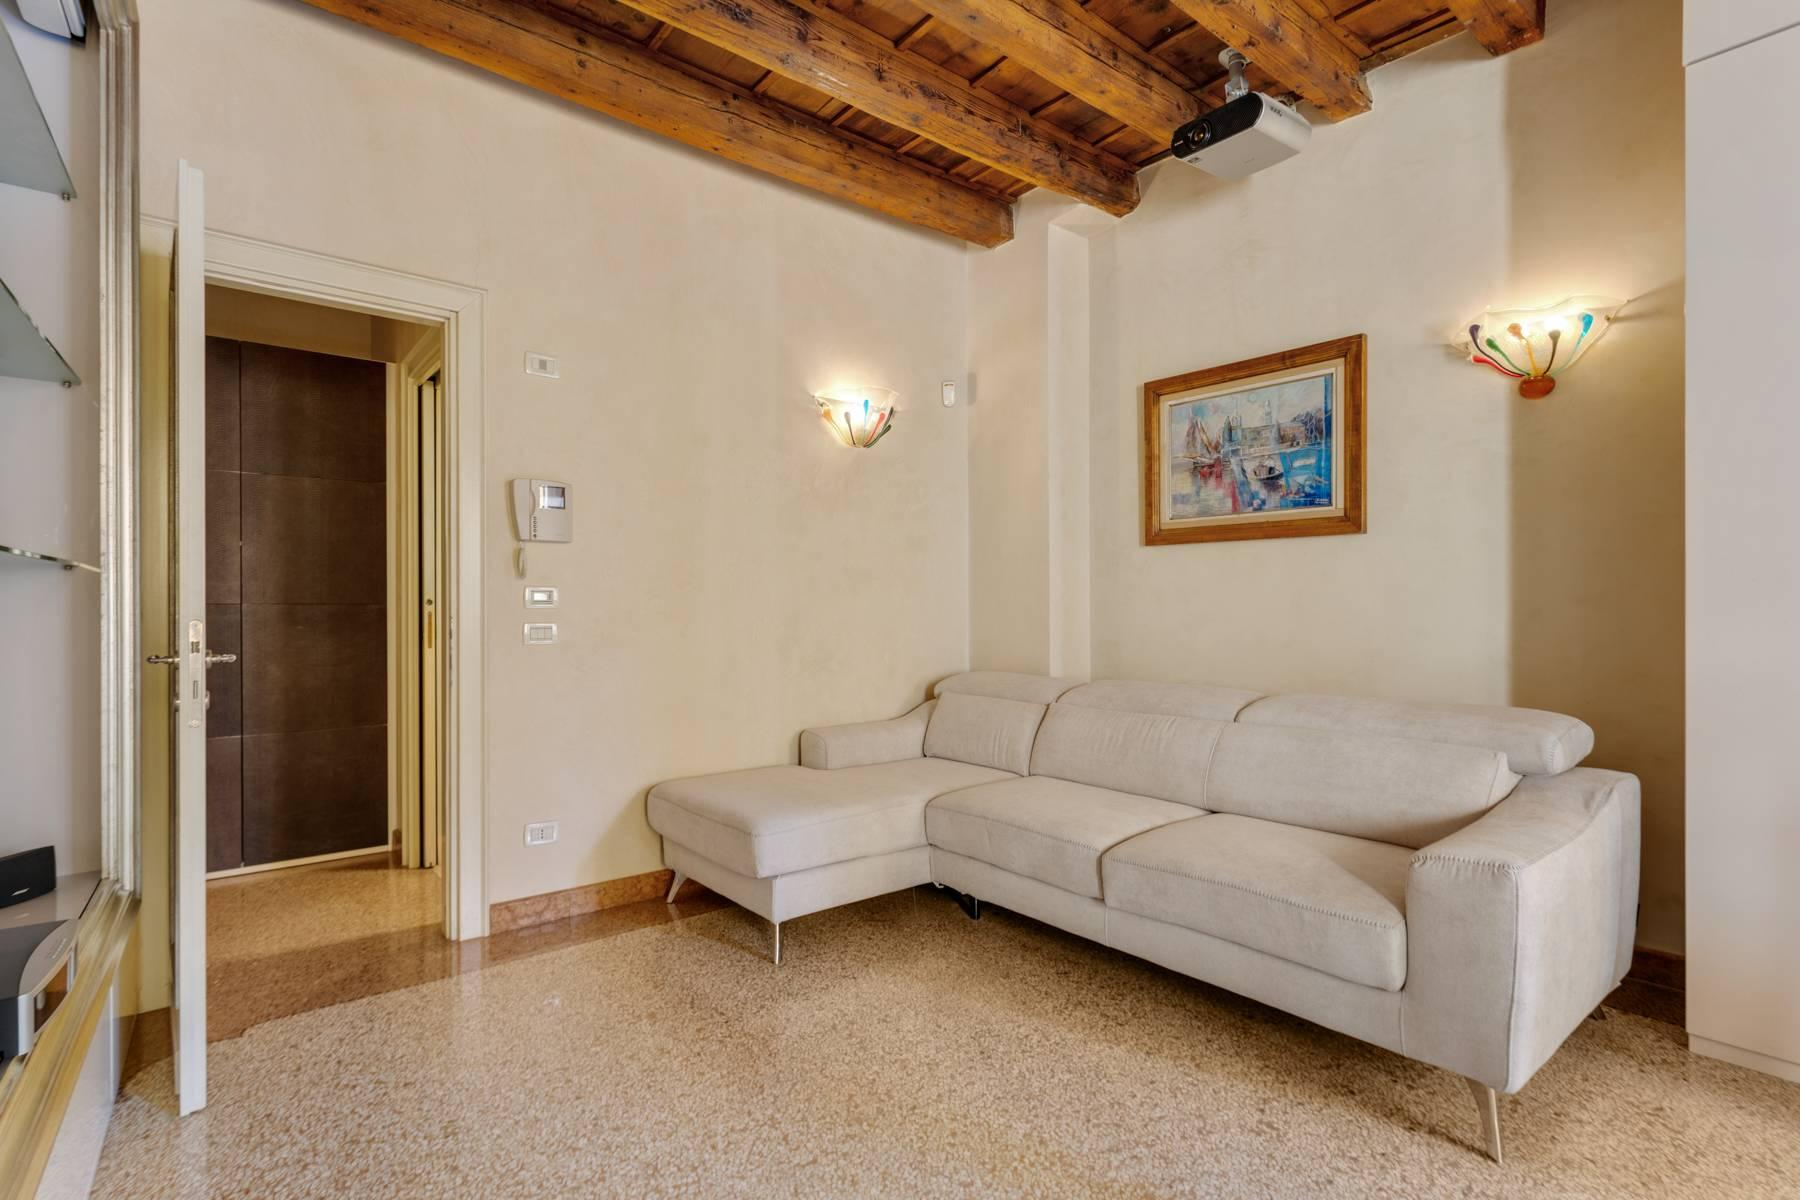 Exquisite apartment just few steps away from Piazza delle Erbe - 17